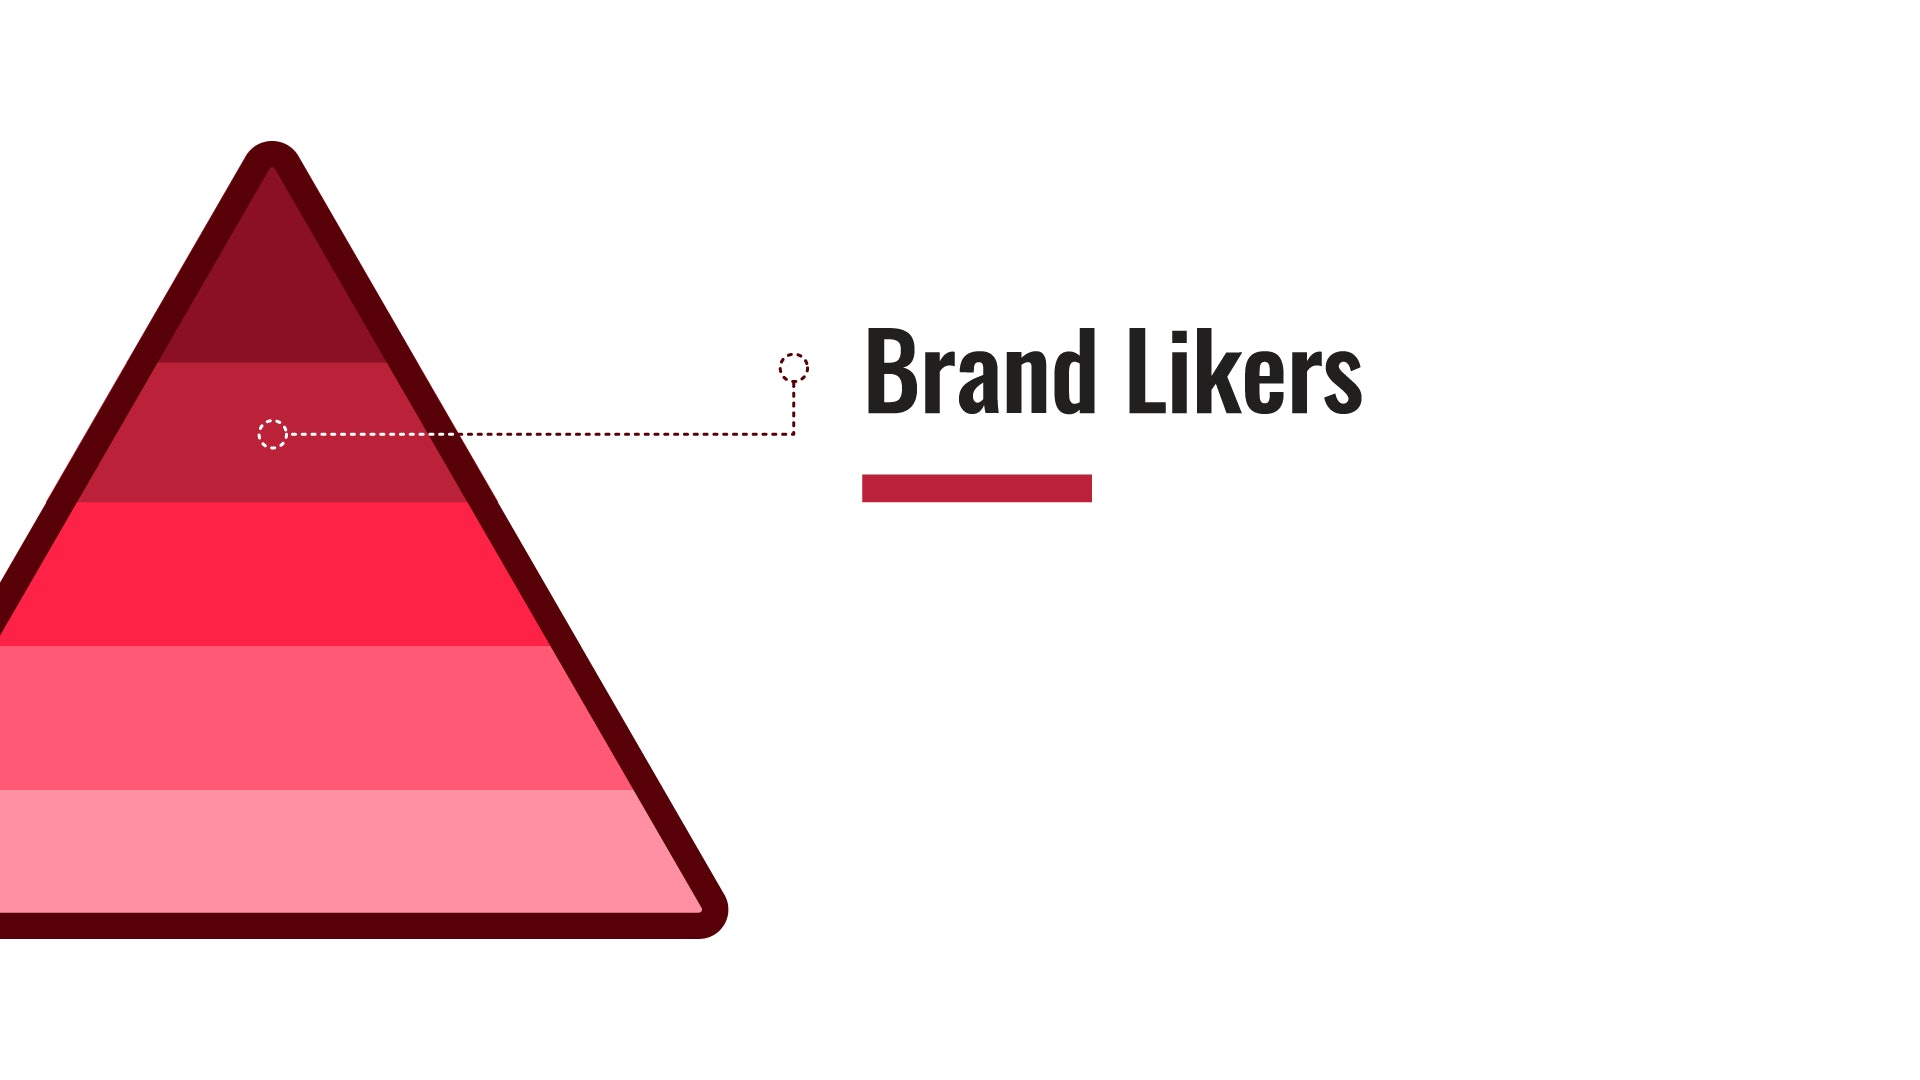 brand likers graphic